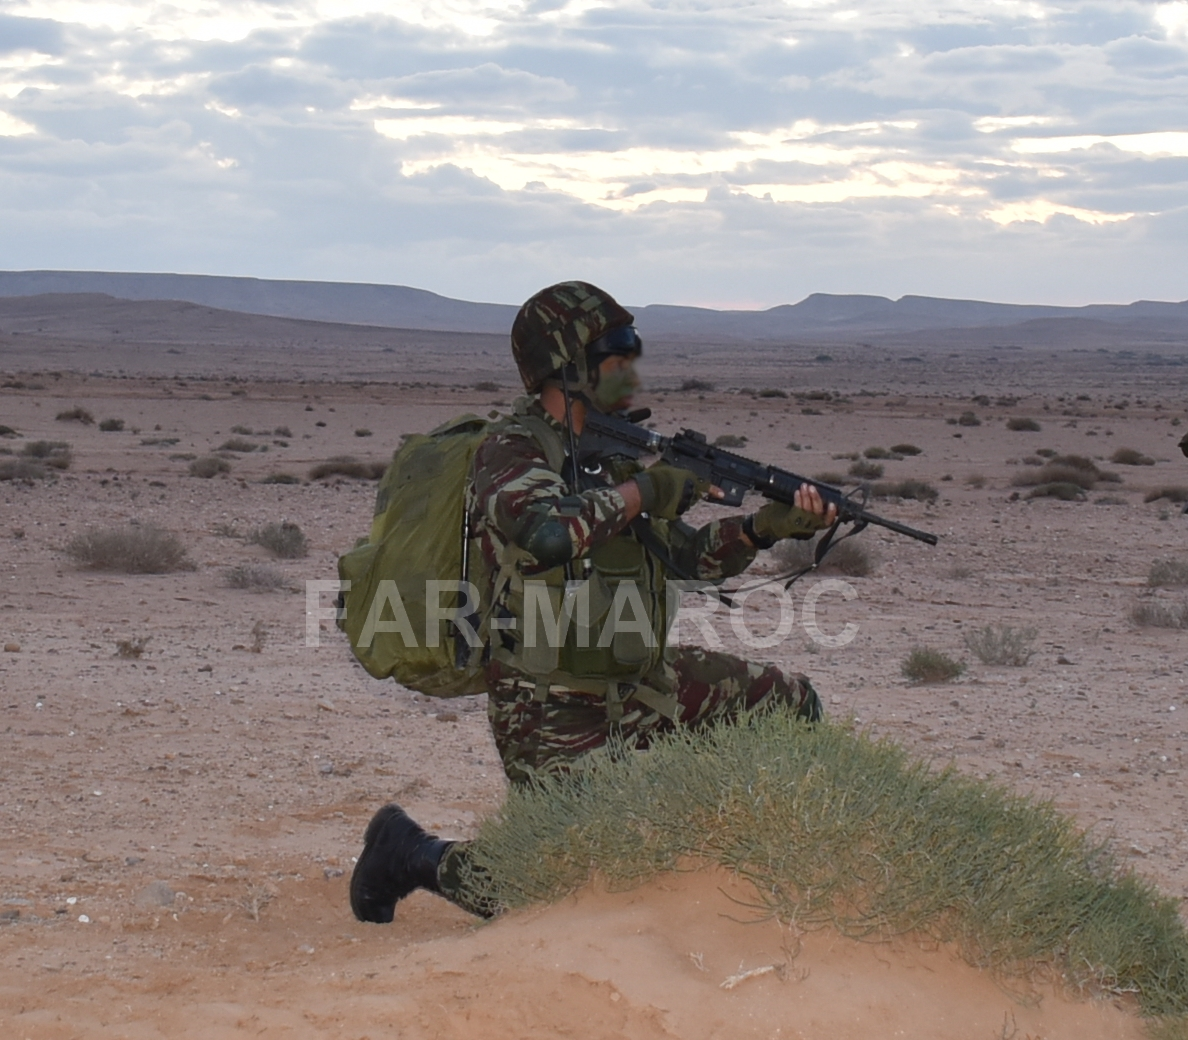 Parachutistes Militaires Marocains / Moroccan Paratroopers - Page 14 49173895486_0d7b8ba5d1_o